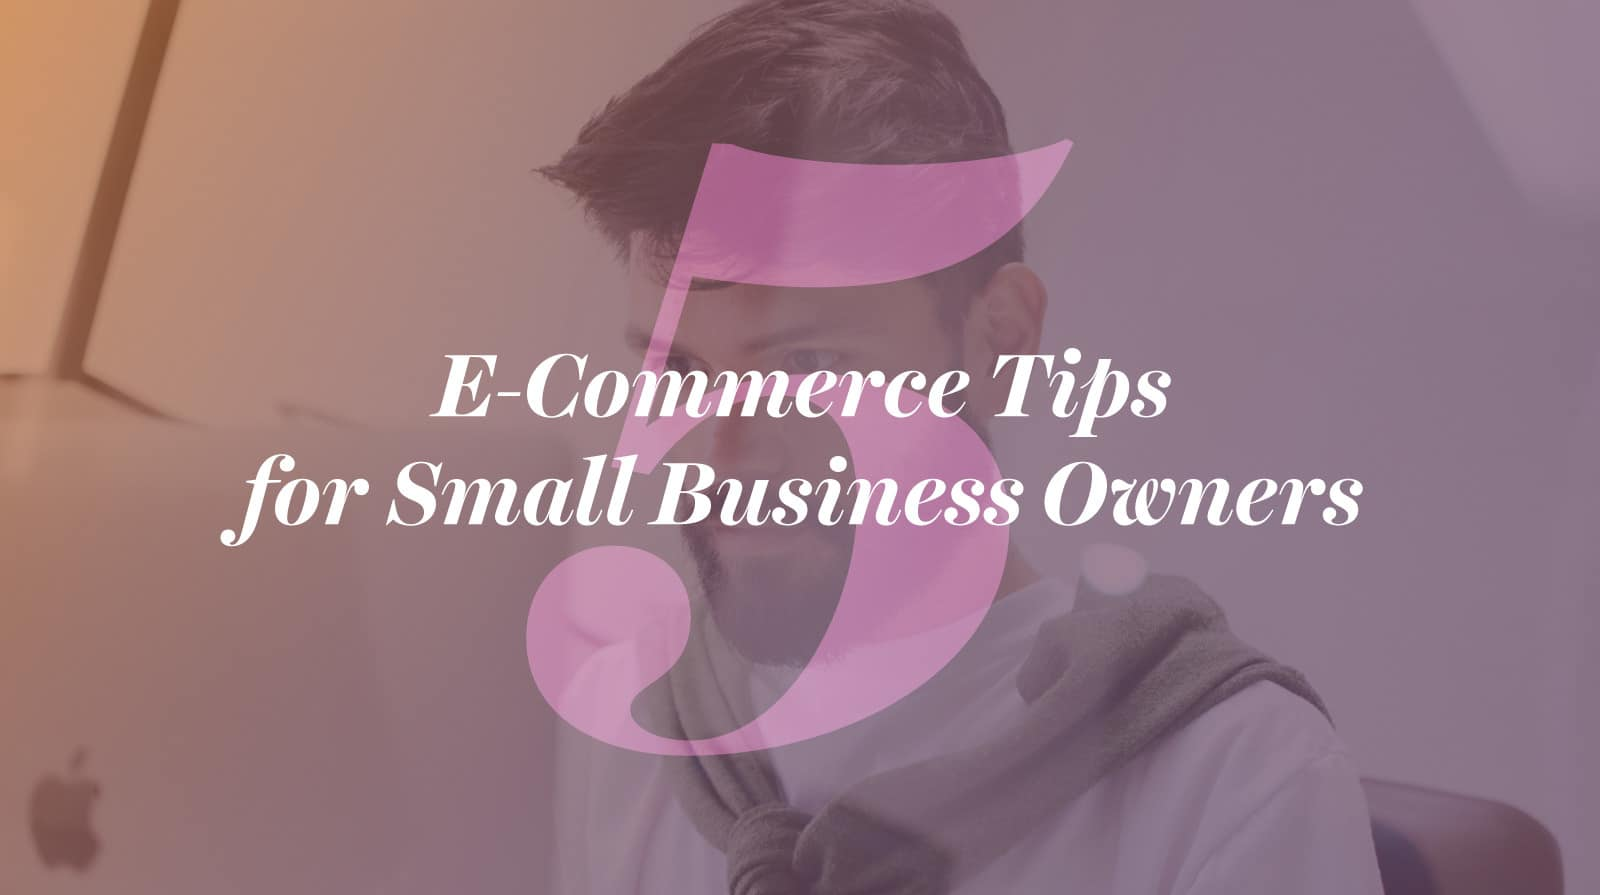 5 e-commerce tips for small business